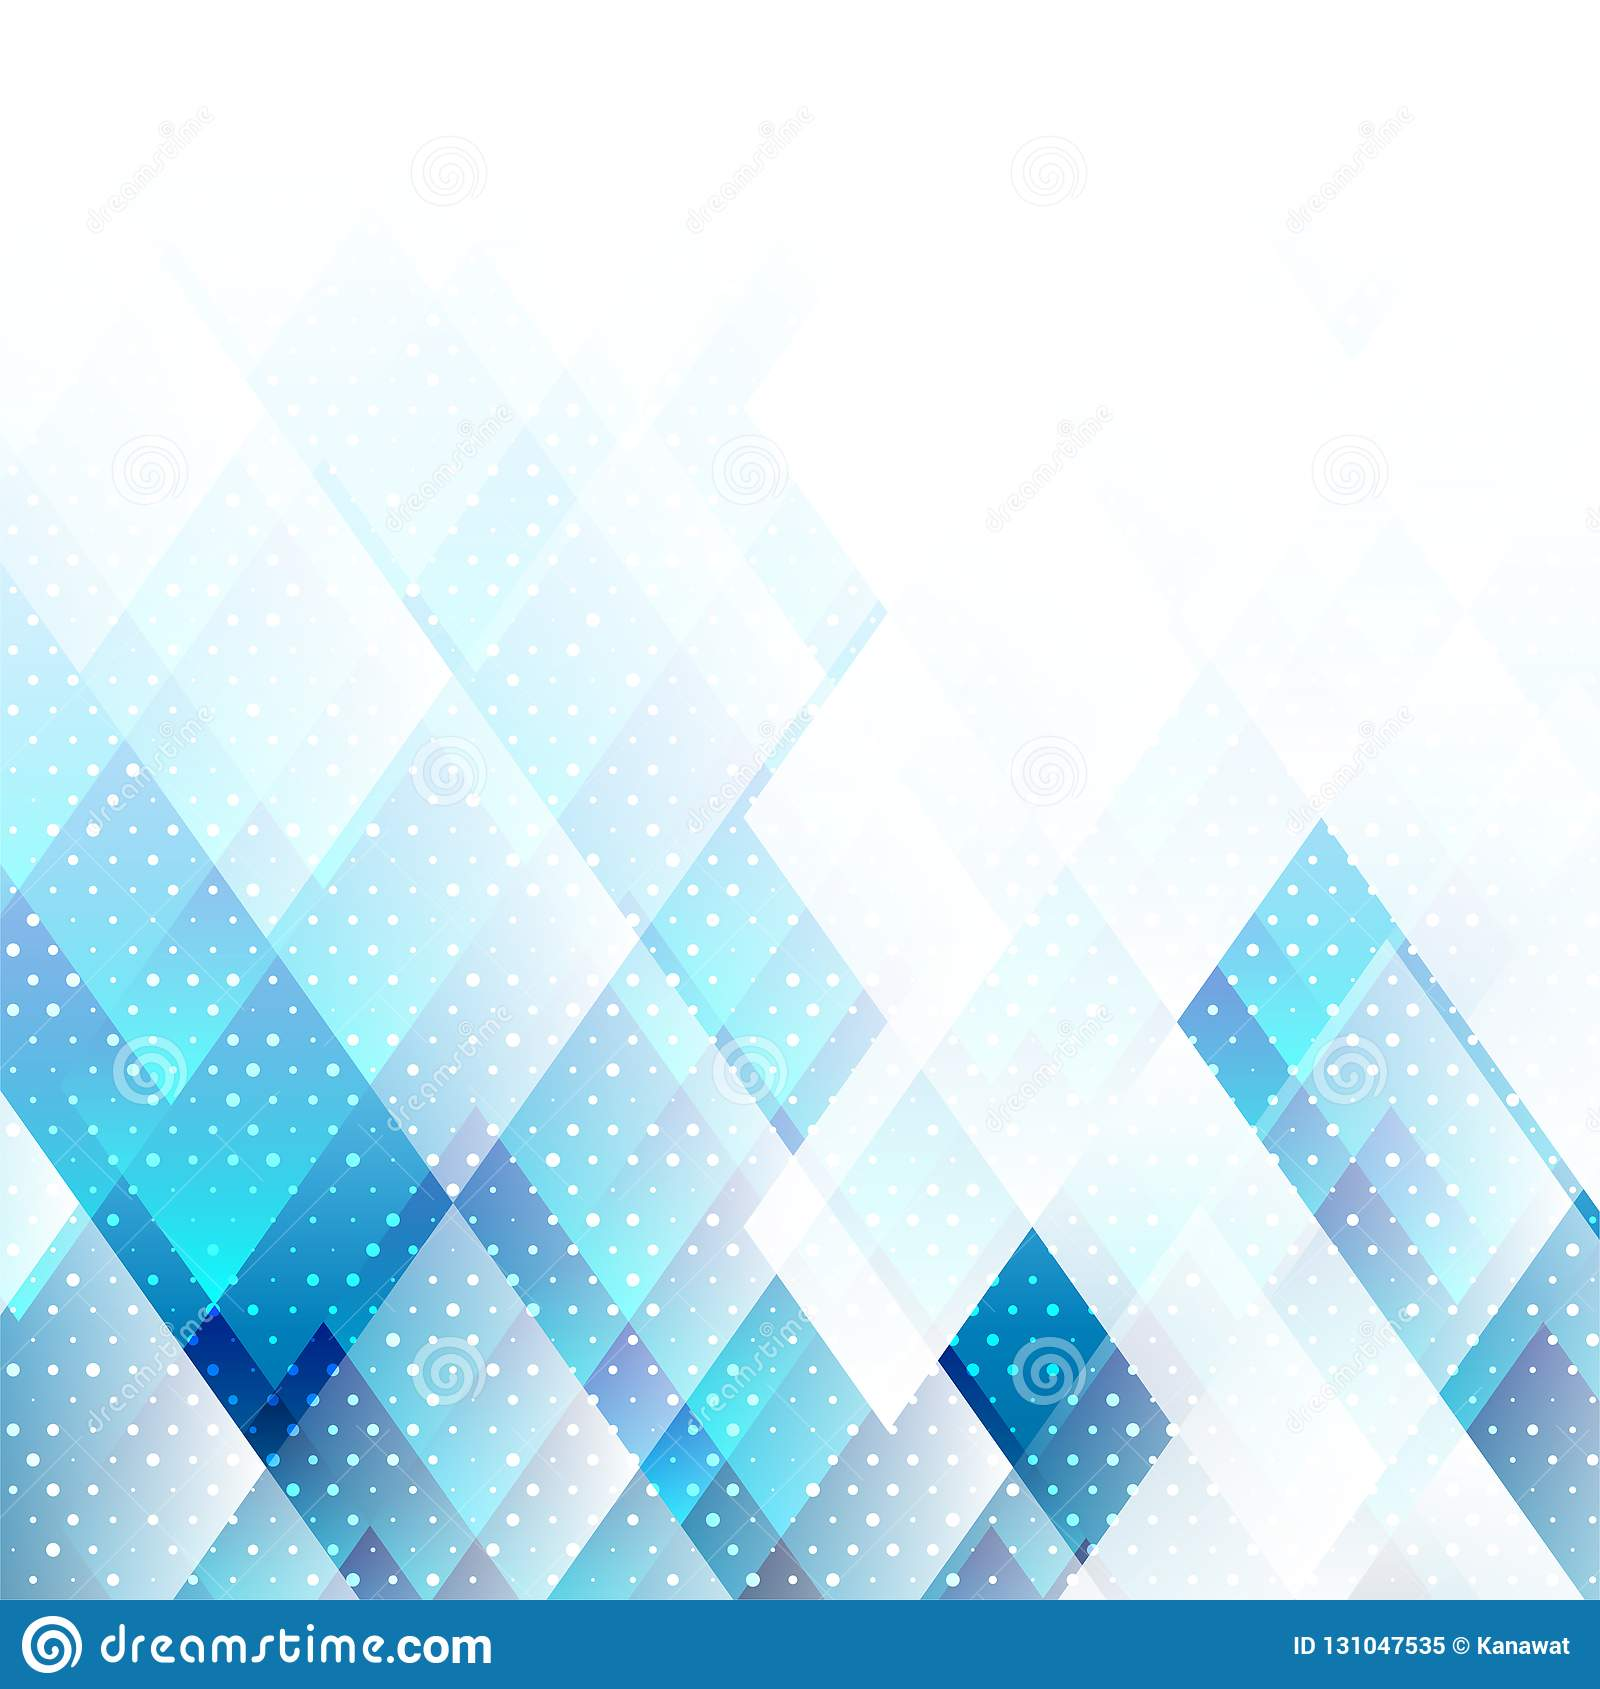 Geometric elements blue color with dots abstract vector background